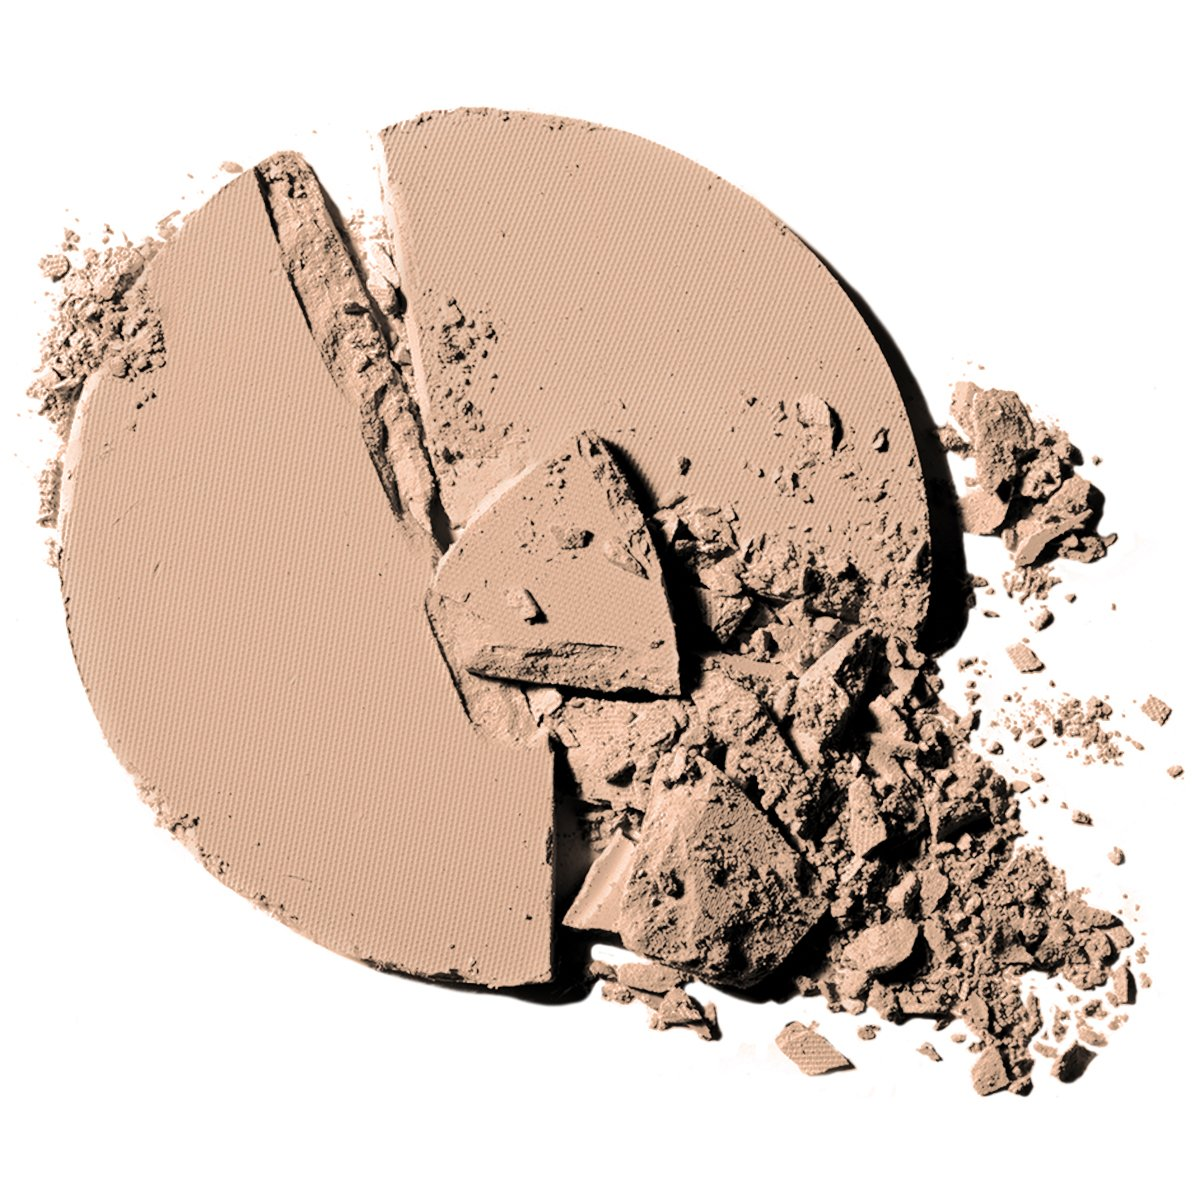 LORAC POREfection Baked Perfecting Powder, PF2 Light by LORAC (Image #5)